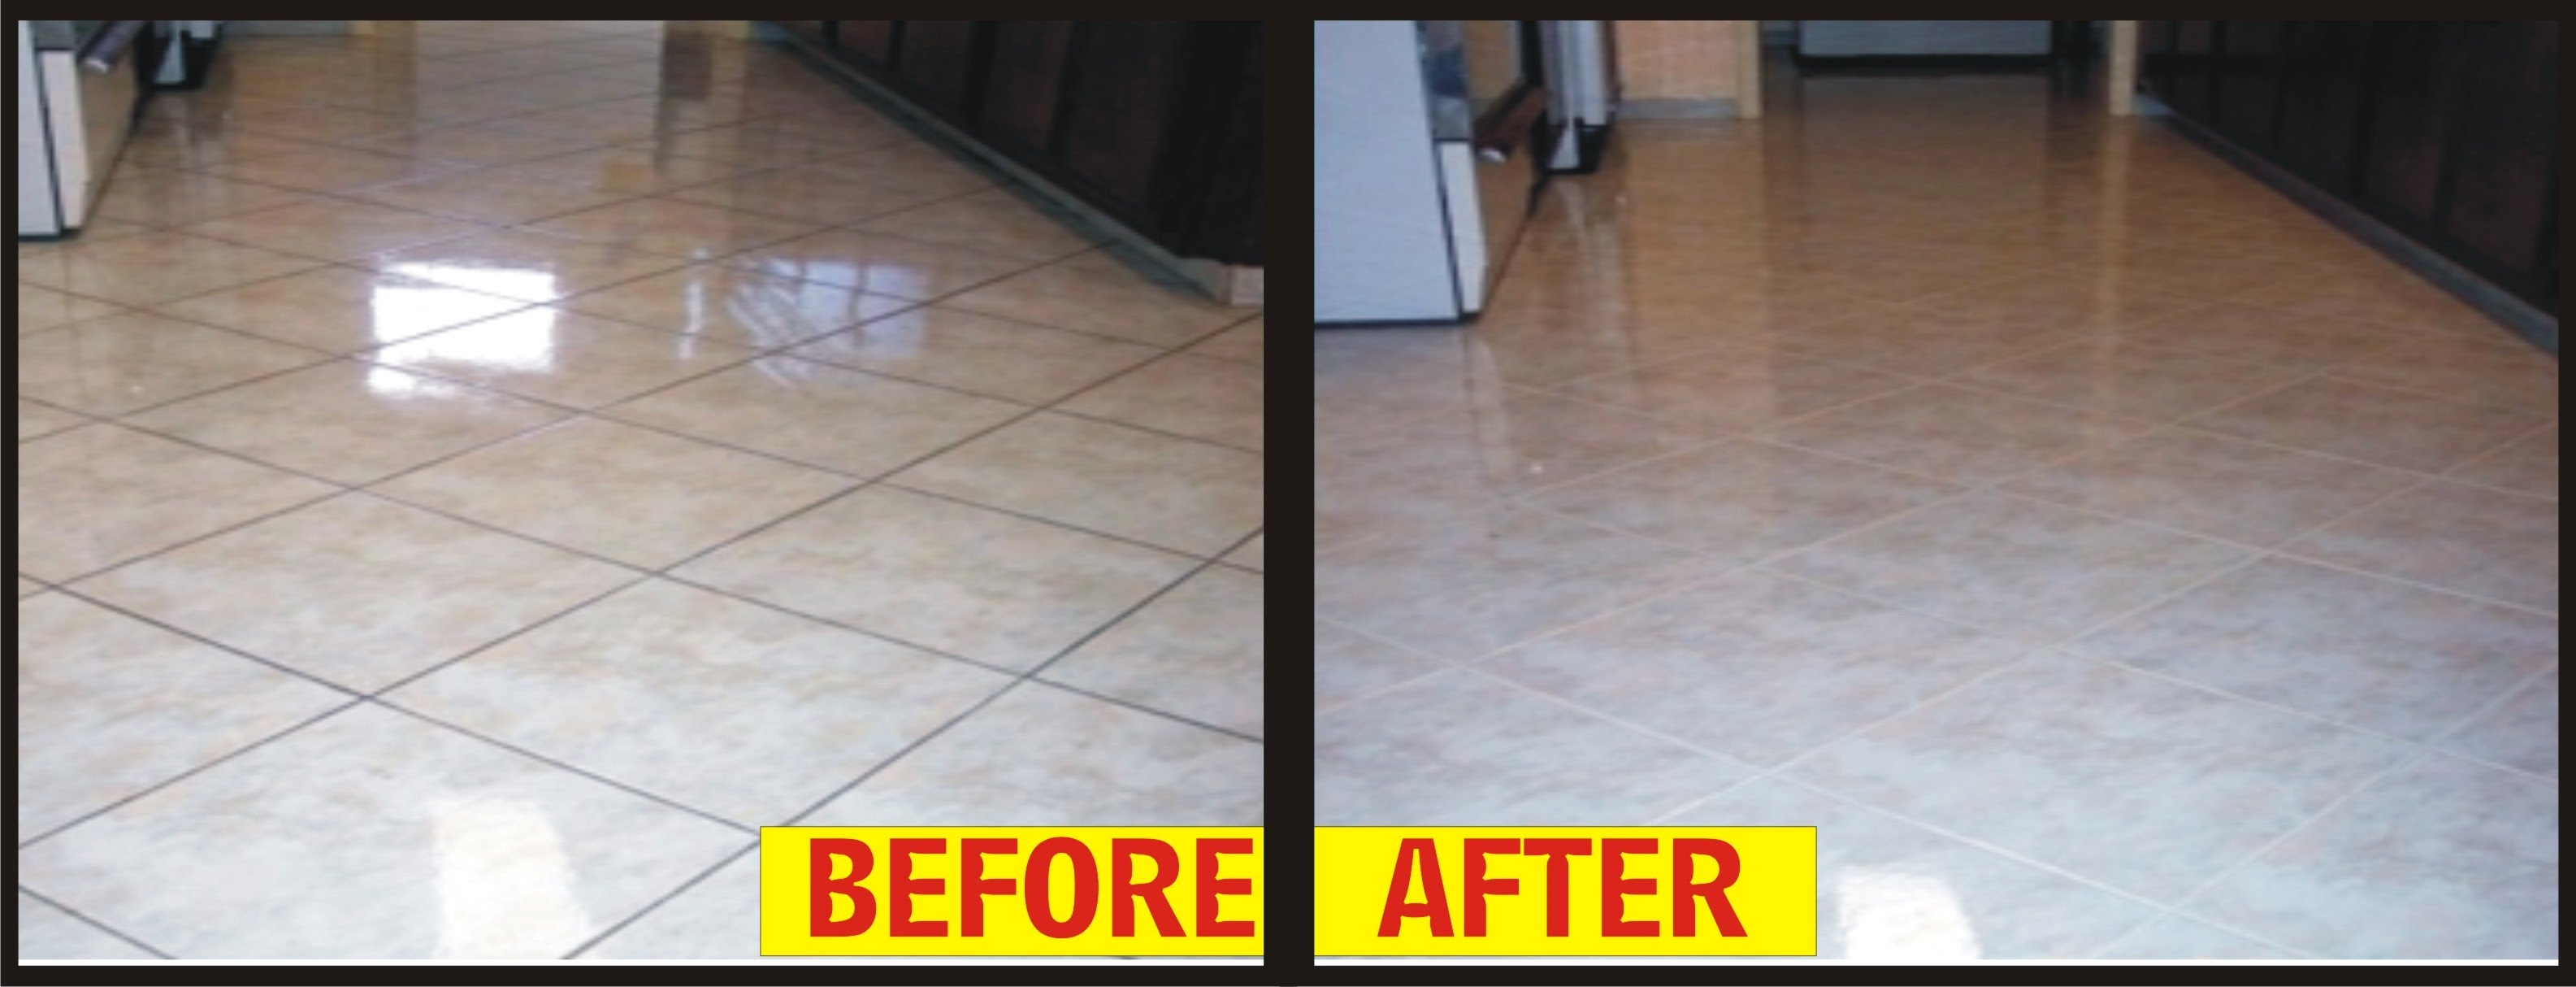 Sofa Cleaning Montreal Clean Tile Floors Best Cleaning Company Montreal